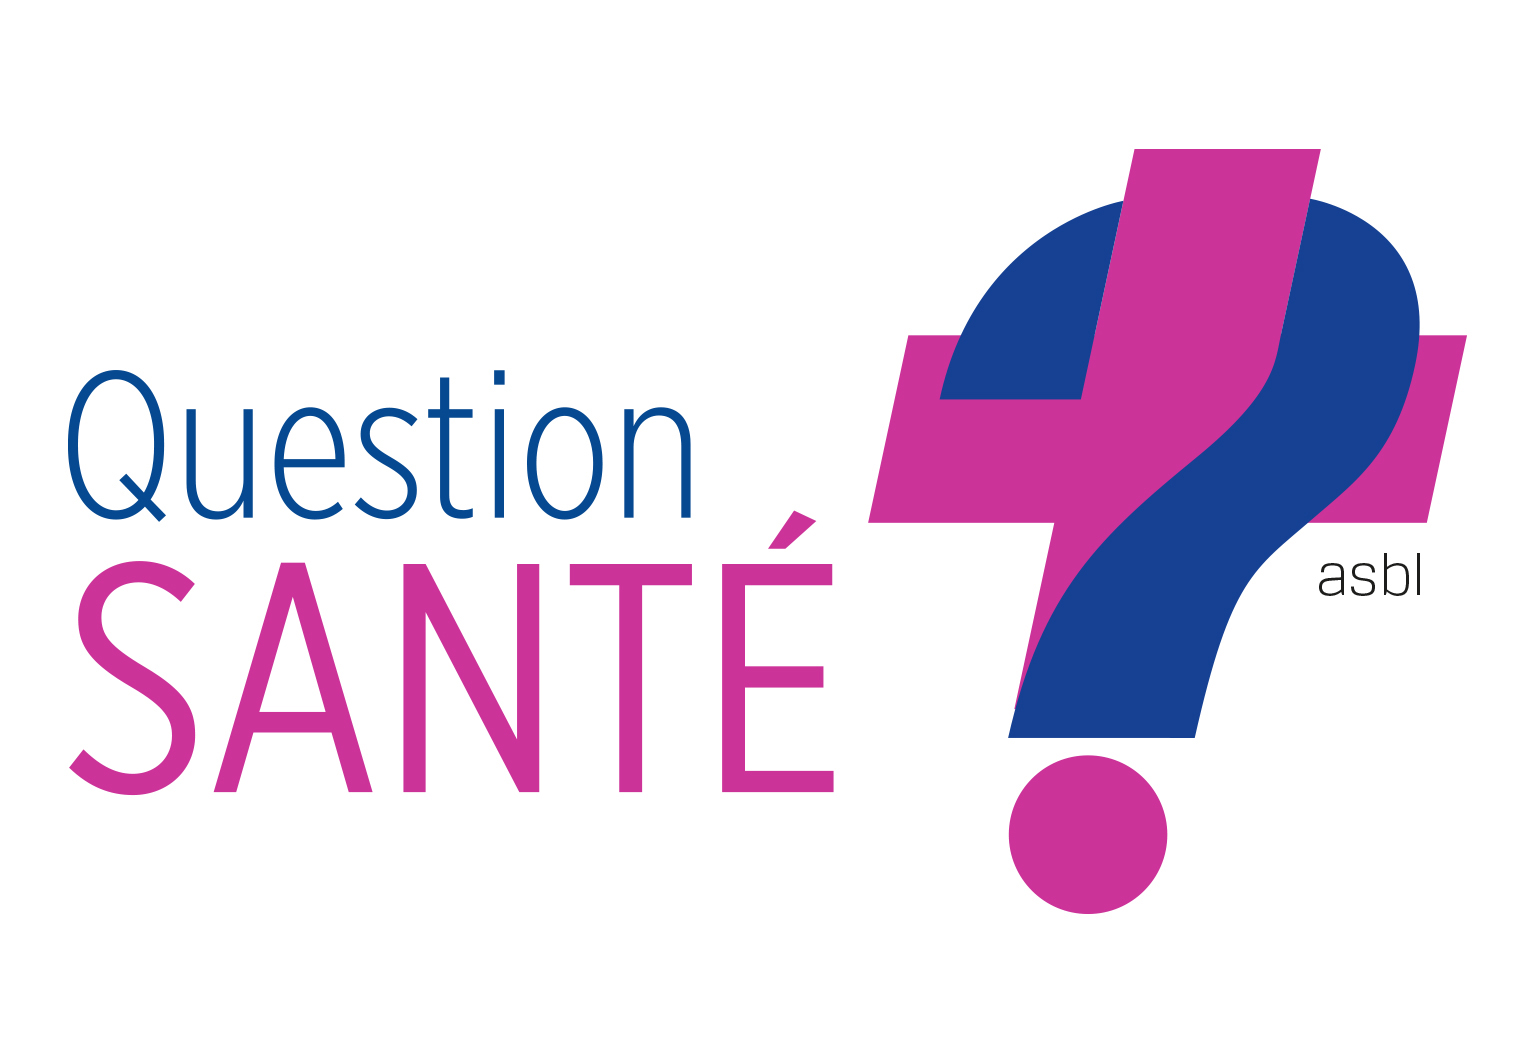 Question santé asbl